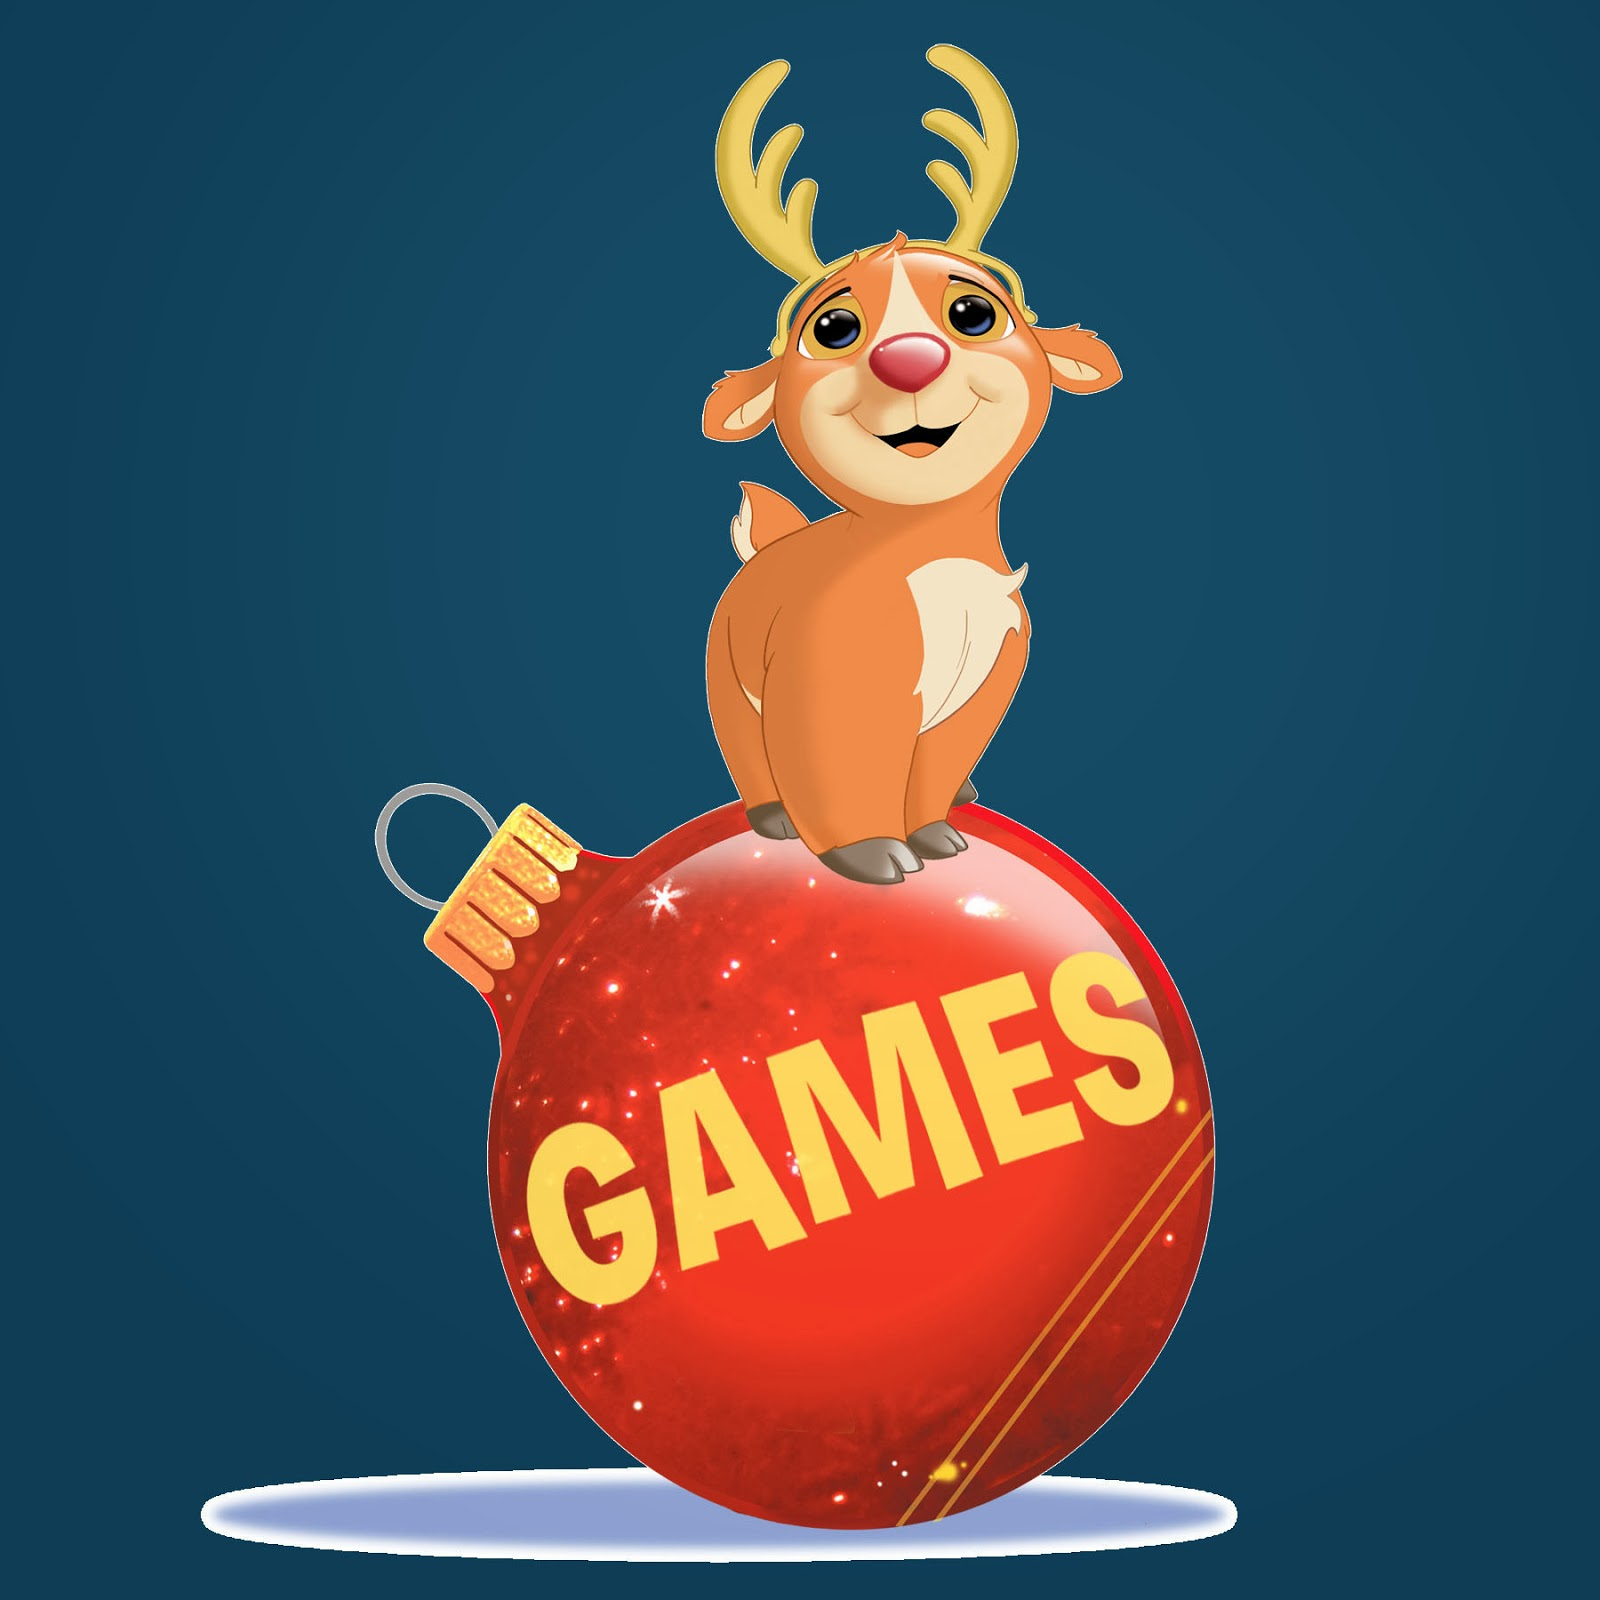 Wallpapers Games: Christmas Games Pictures